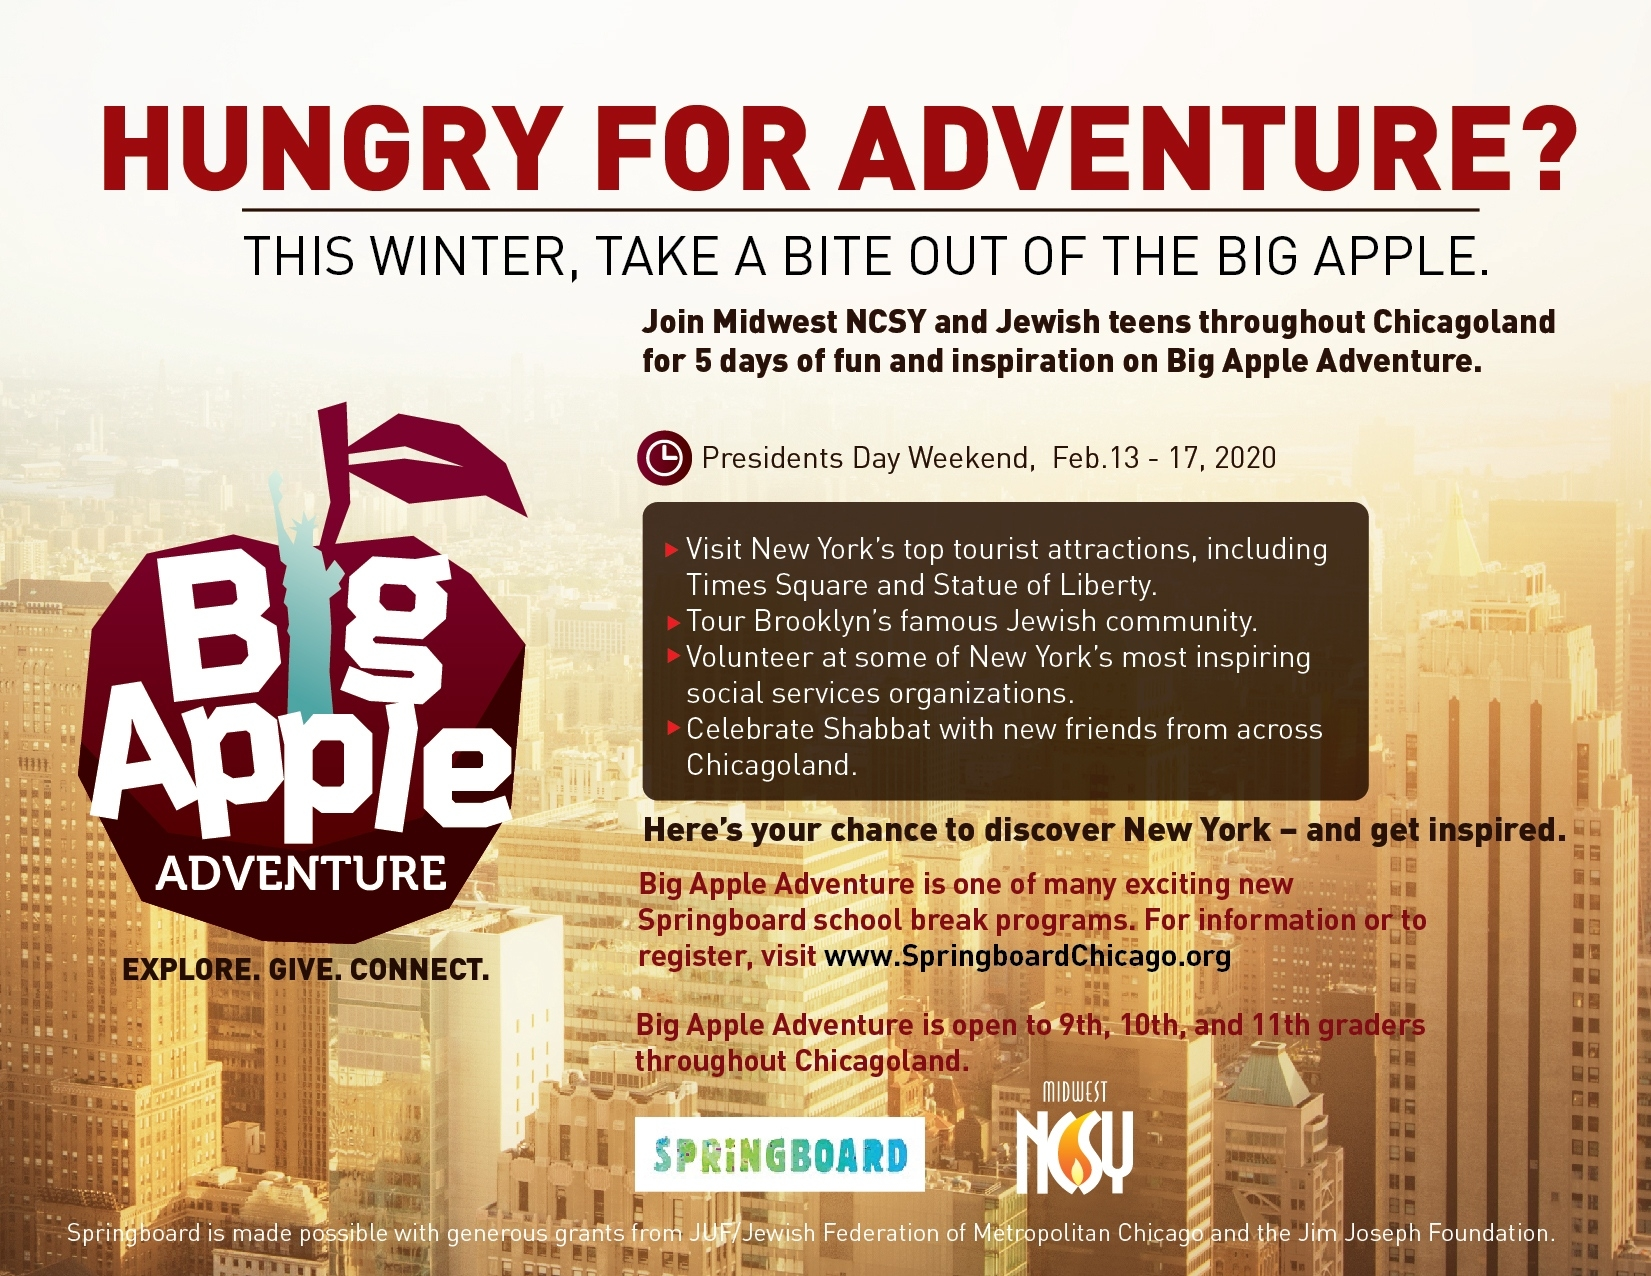 Big Apple Adventure - Midwest Ncsy When The Jewish Federation Of Chicago Will Be Close For Holidays In 2020